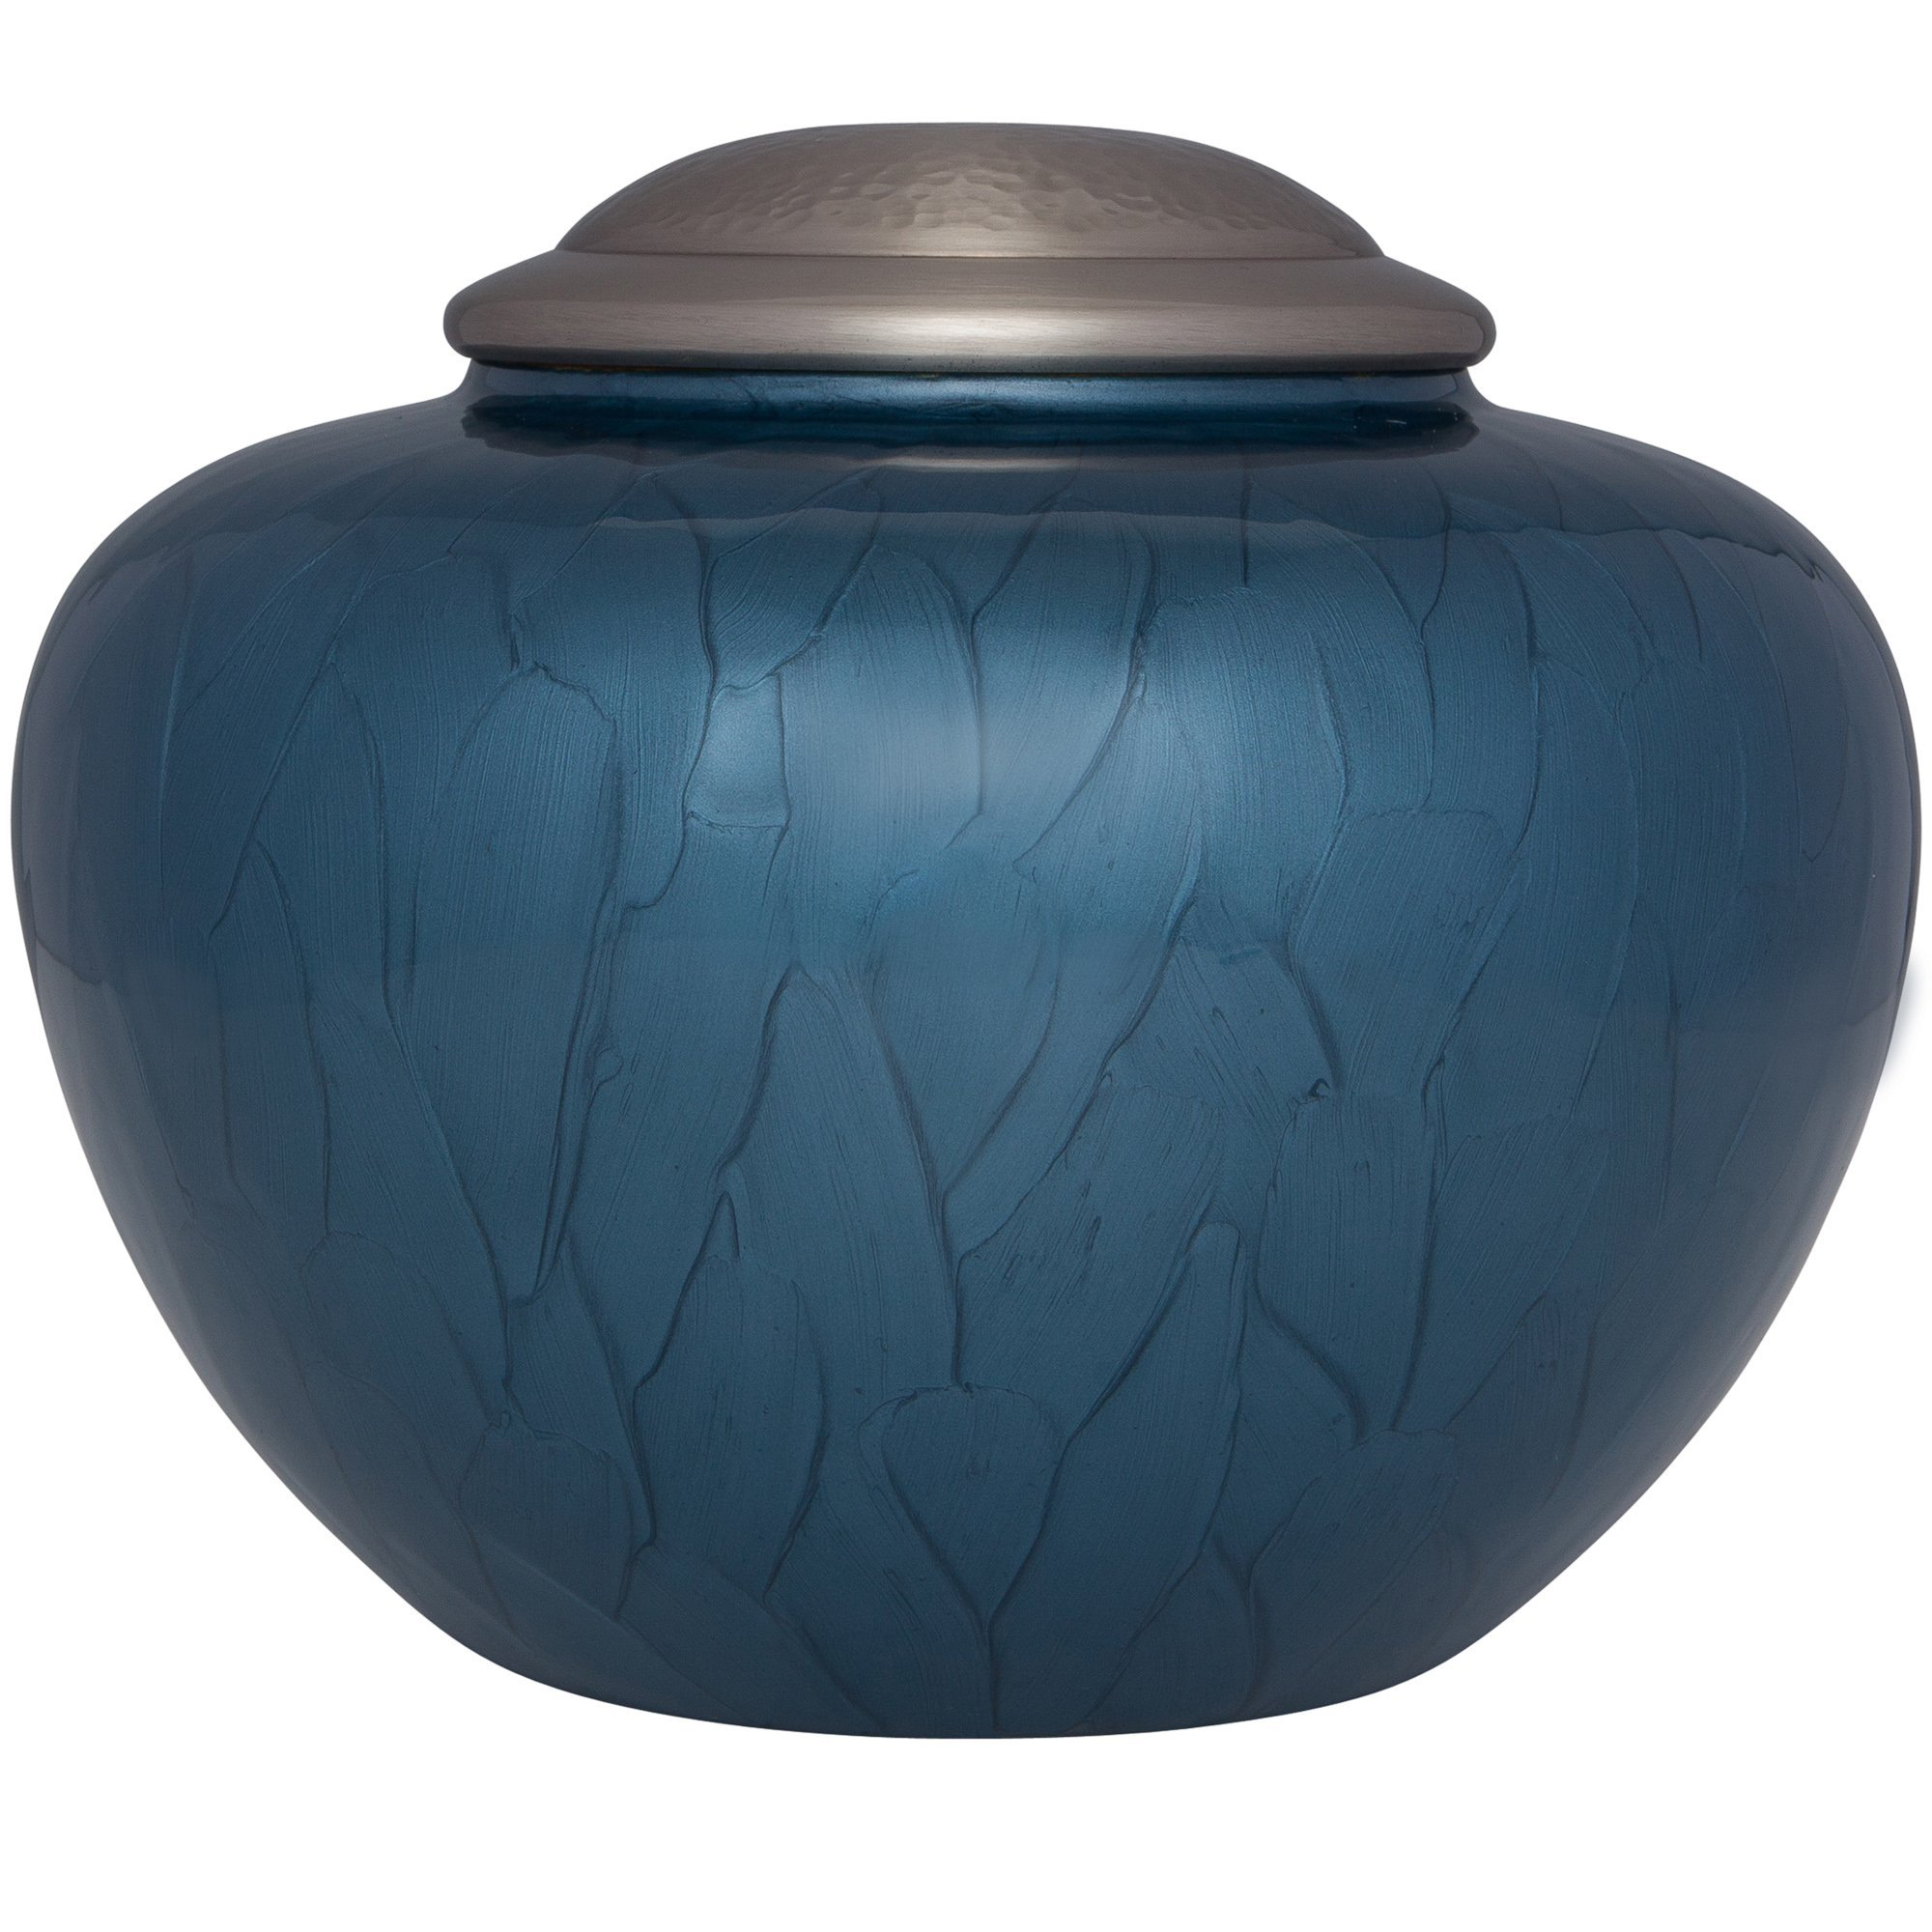 Blue Funeral Urn by Liliane Memorials - Cremation Urn for Human Ashes - Hand Made in Brass - Suitable for Cemetery Burial or Niche - Large Size fits remains of Adults up to 200 lbs - Nido Blue Model